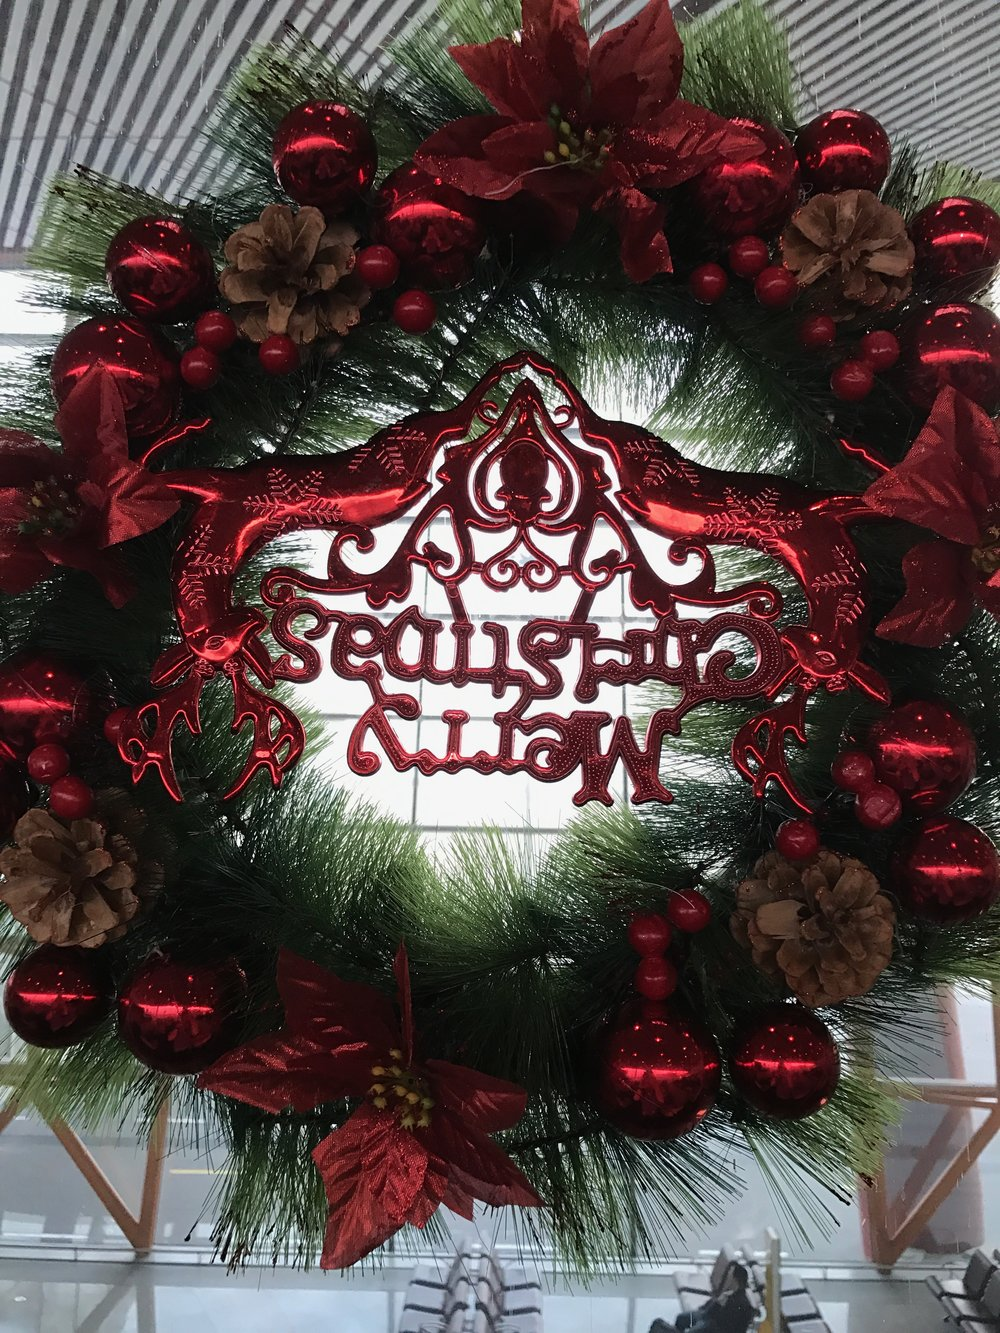 Upside-down Christmas wreath at Cathay Pacific Lounge, Beijing Airport (PEK) T3E